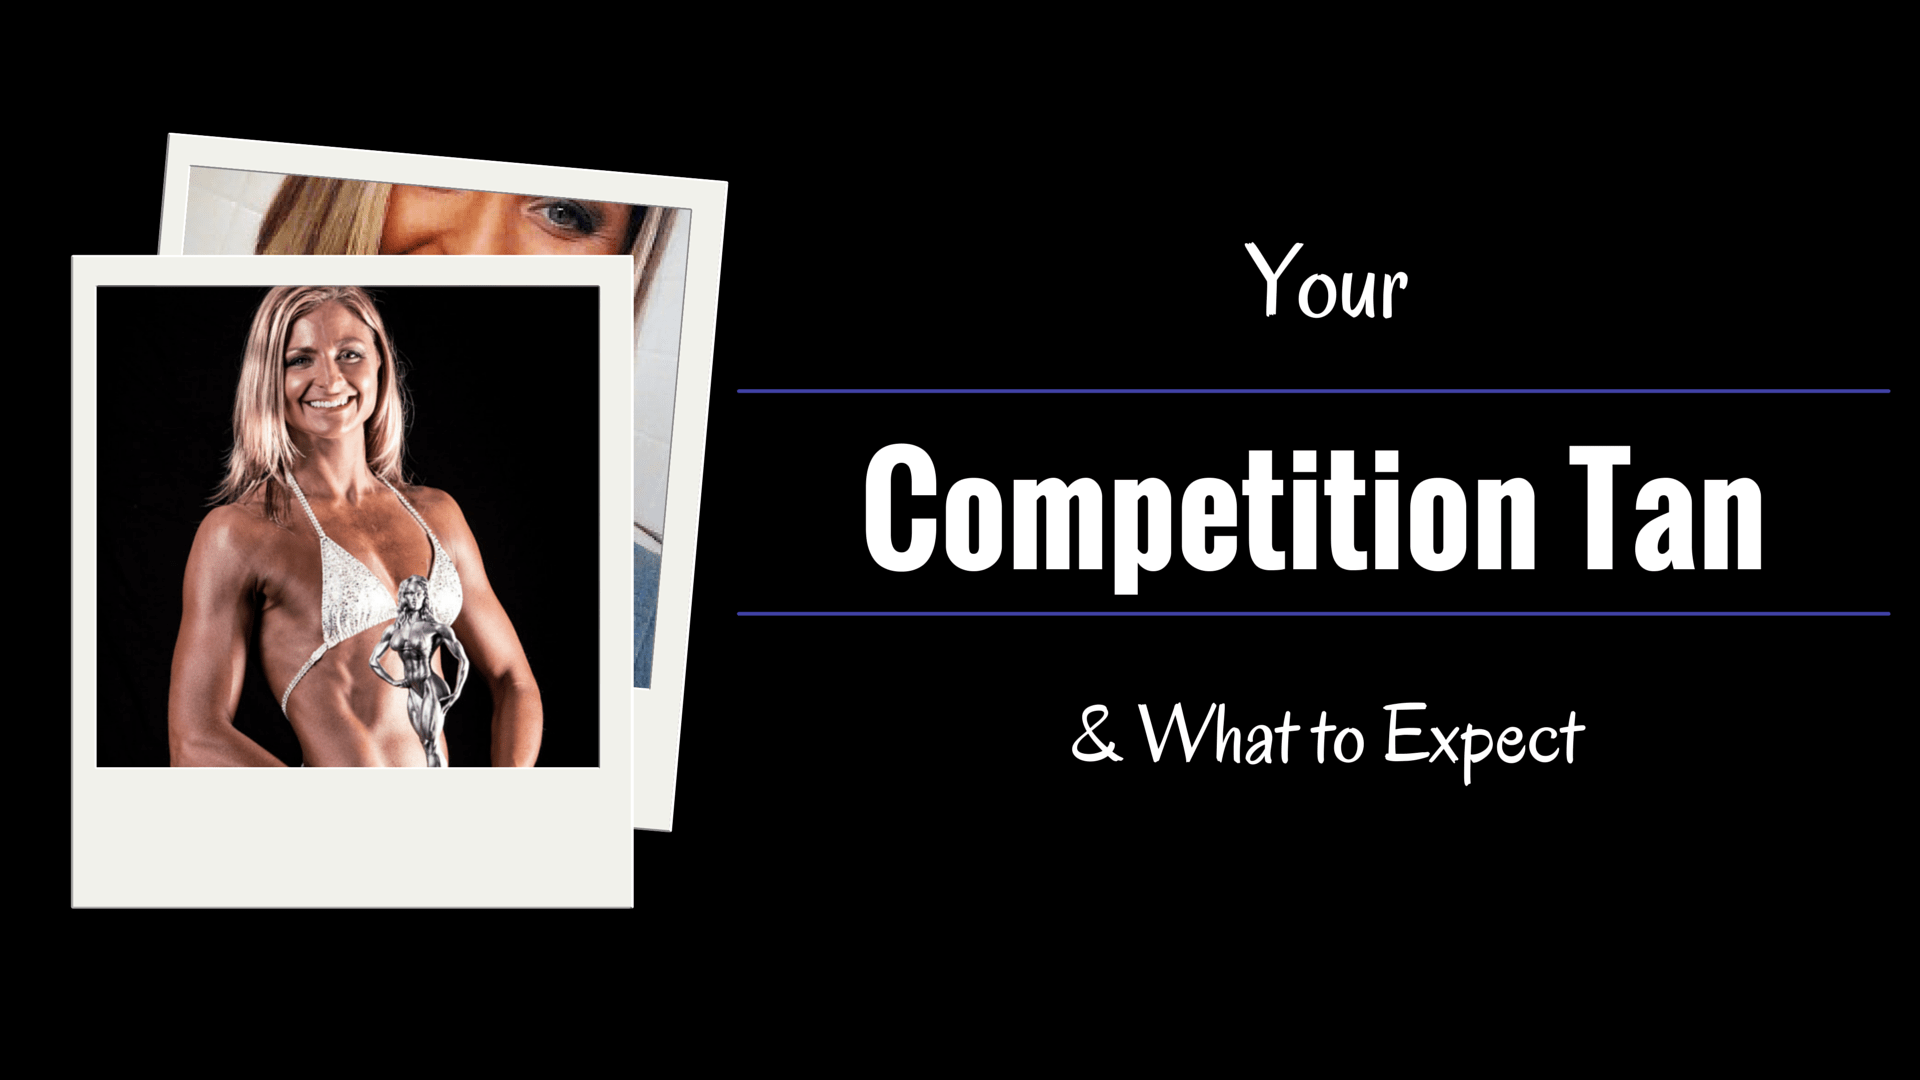 Your Competition tan and what to expect